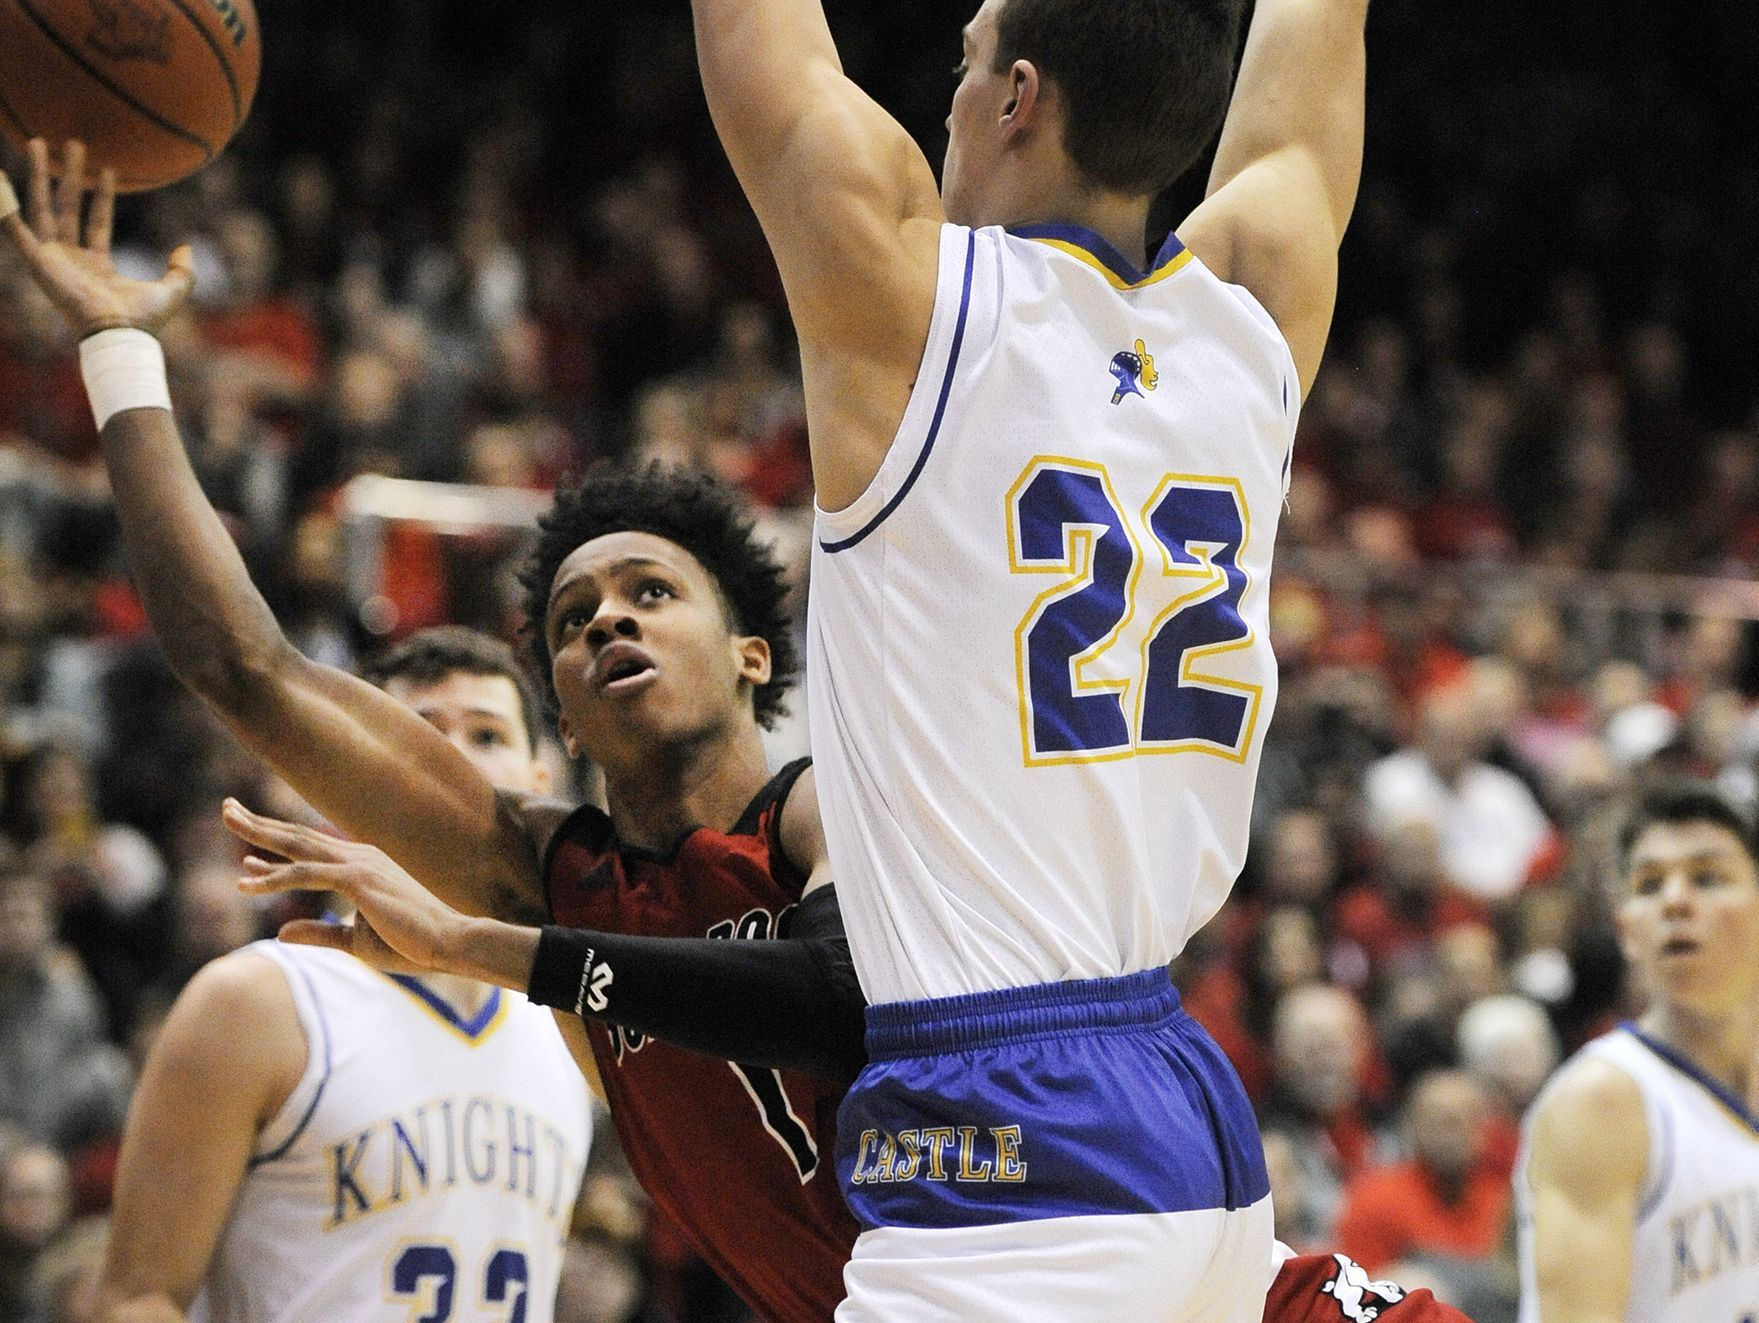 New Albany's Romeo Langford (left) tries to shoot around the defense of Castle's Jack Nunge (22) on Saturday in the 2017 IHSAA 4A Regional Basketball Final at Seymour High School. Castle won 72-64. (Photo by David Lee Hartlage, Special to The Courier-Journal) Mar. 11, 2017